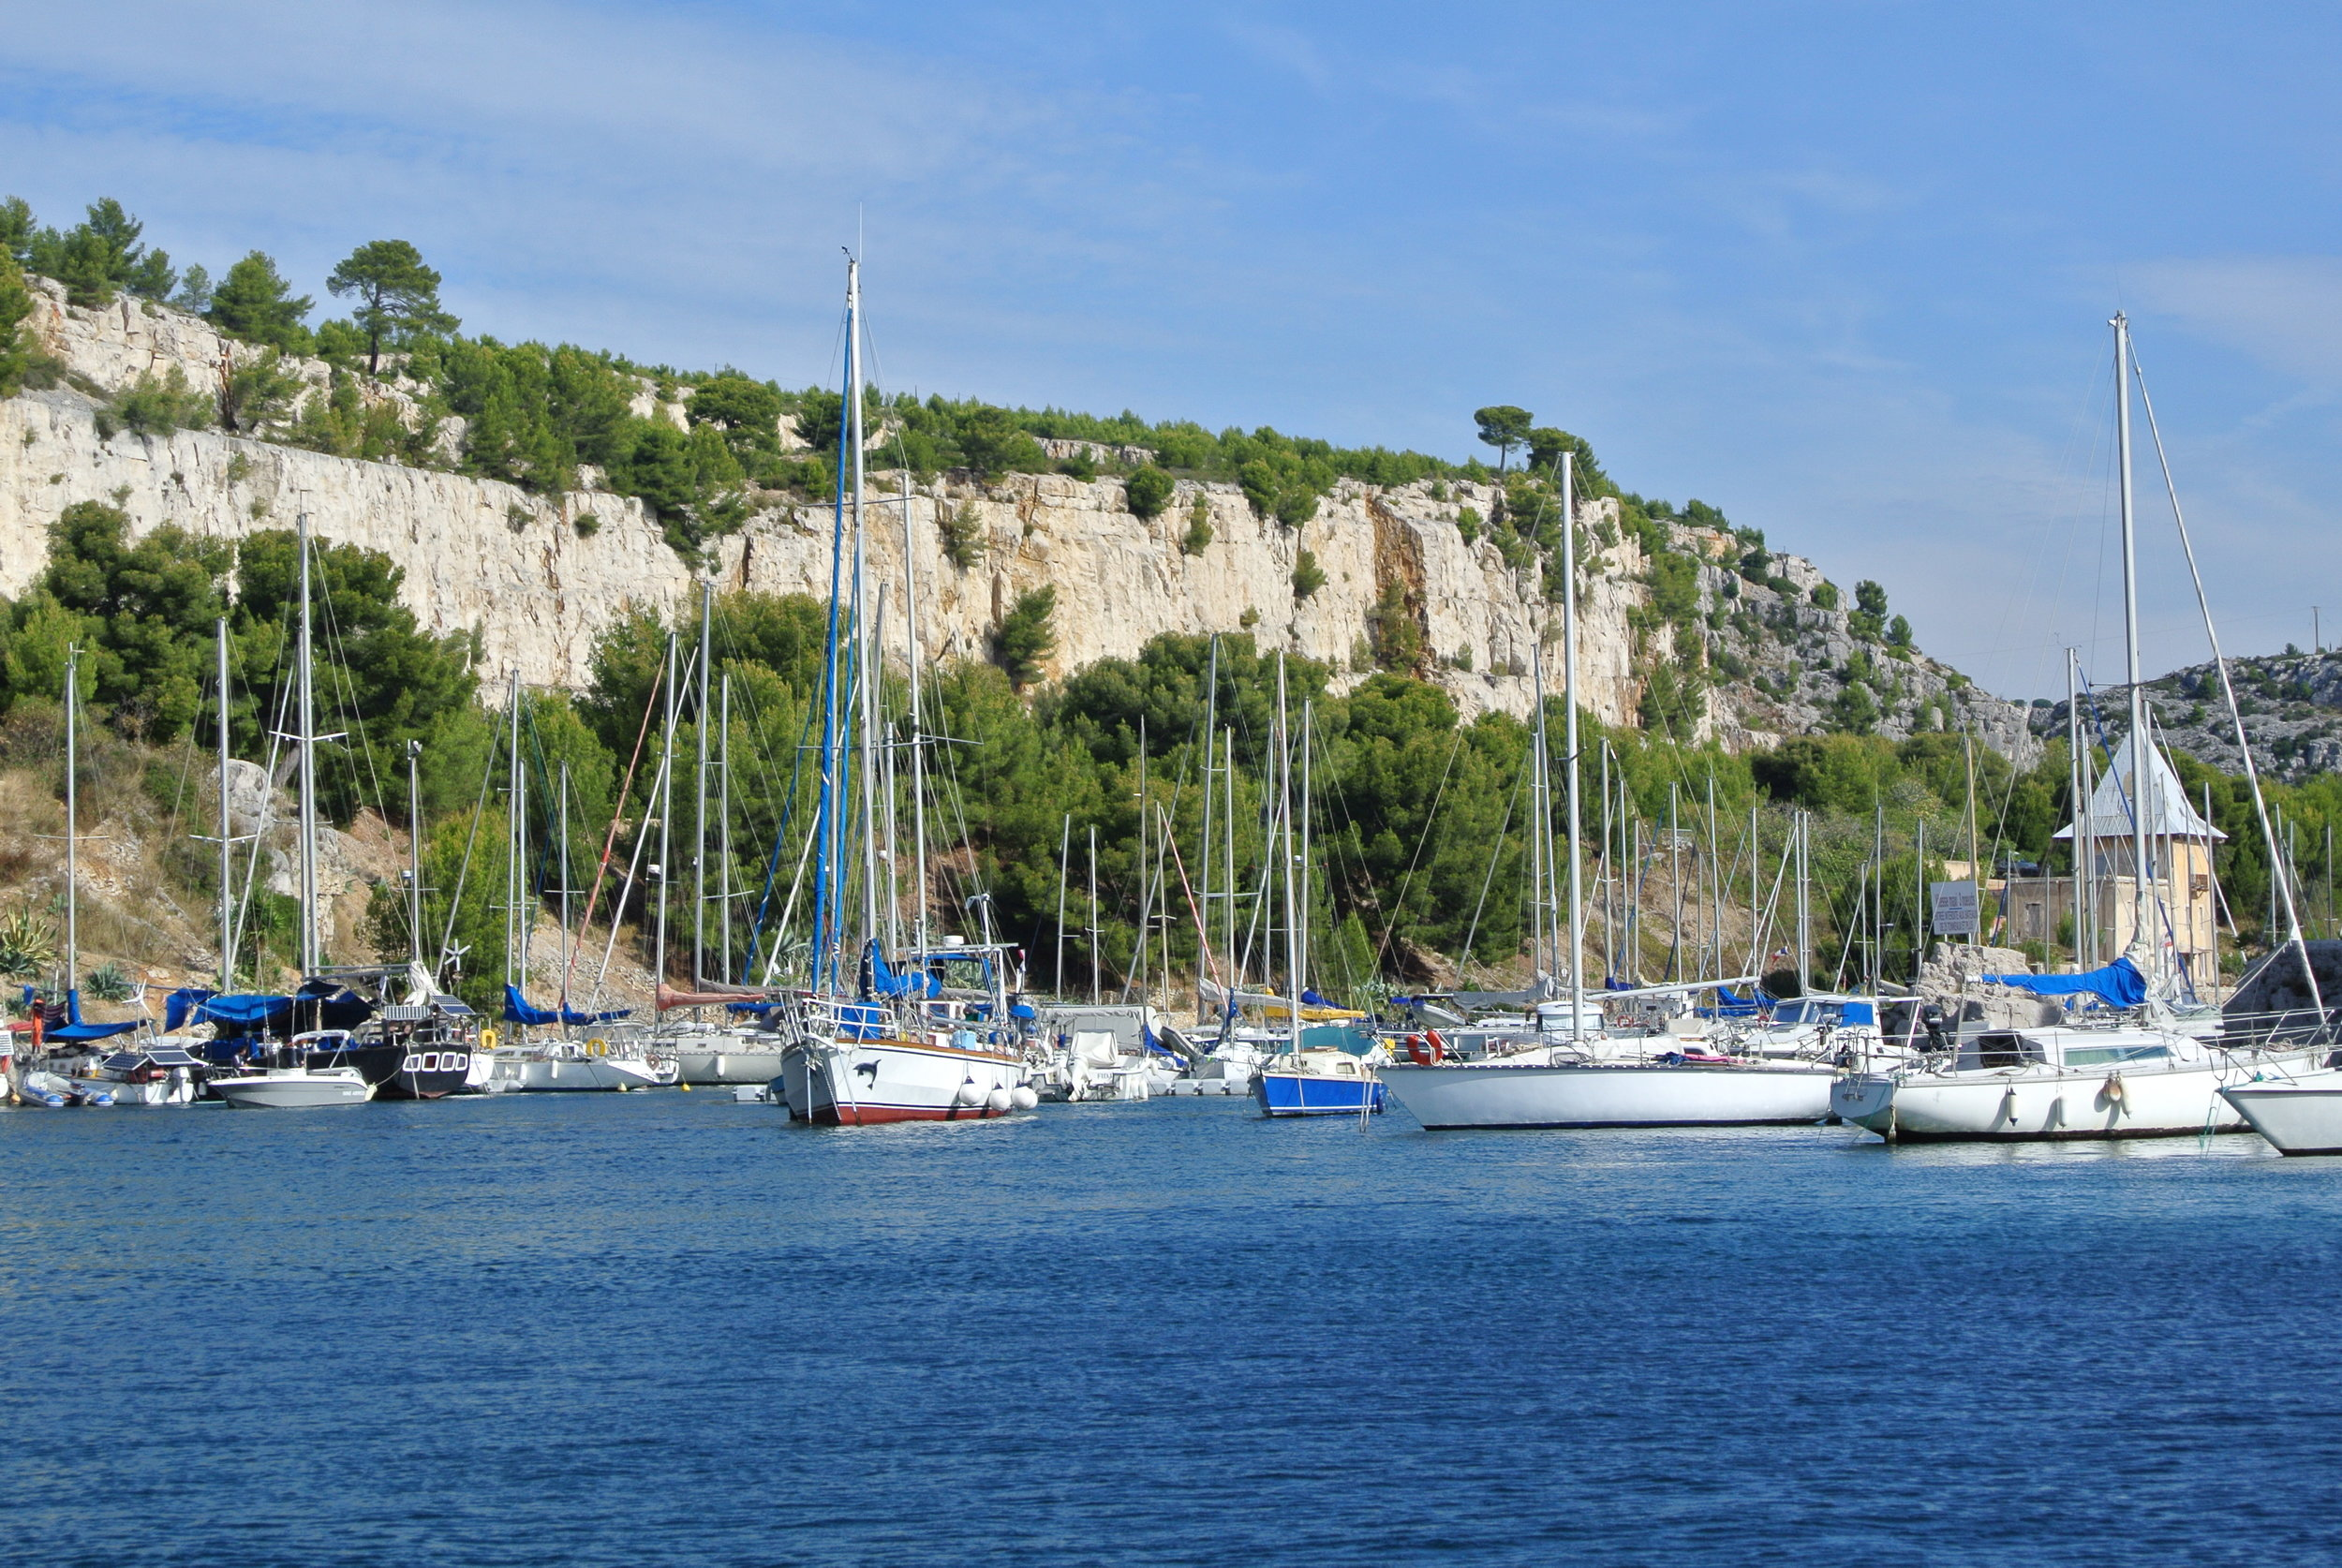 The Port of Cassis on the French Riviera, with its pretty backdrop of the limestone cliffs called calanques